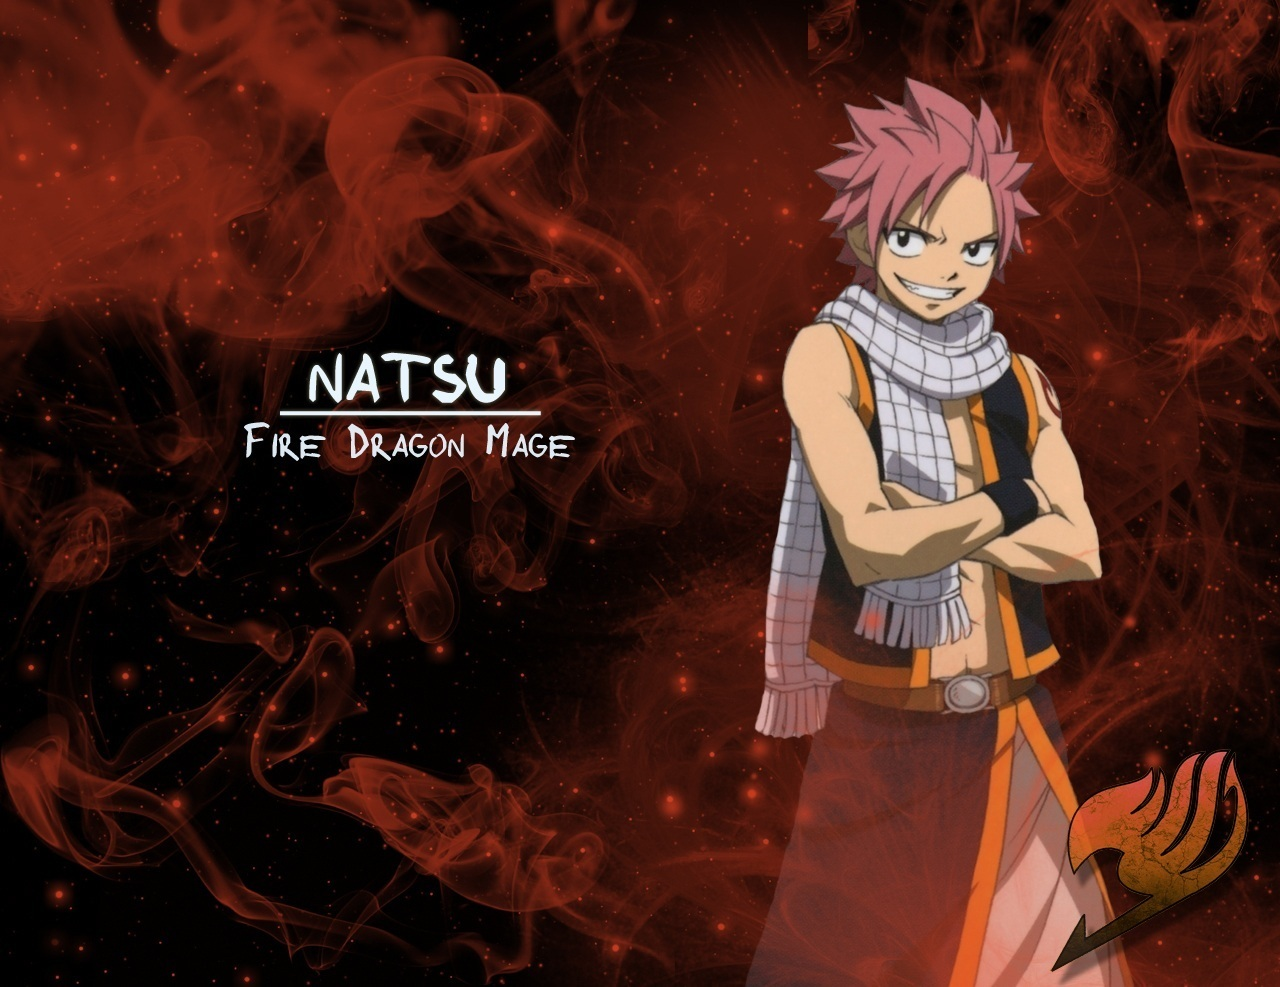 natsu dragneel images natsu hd wallpaper and background